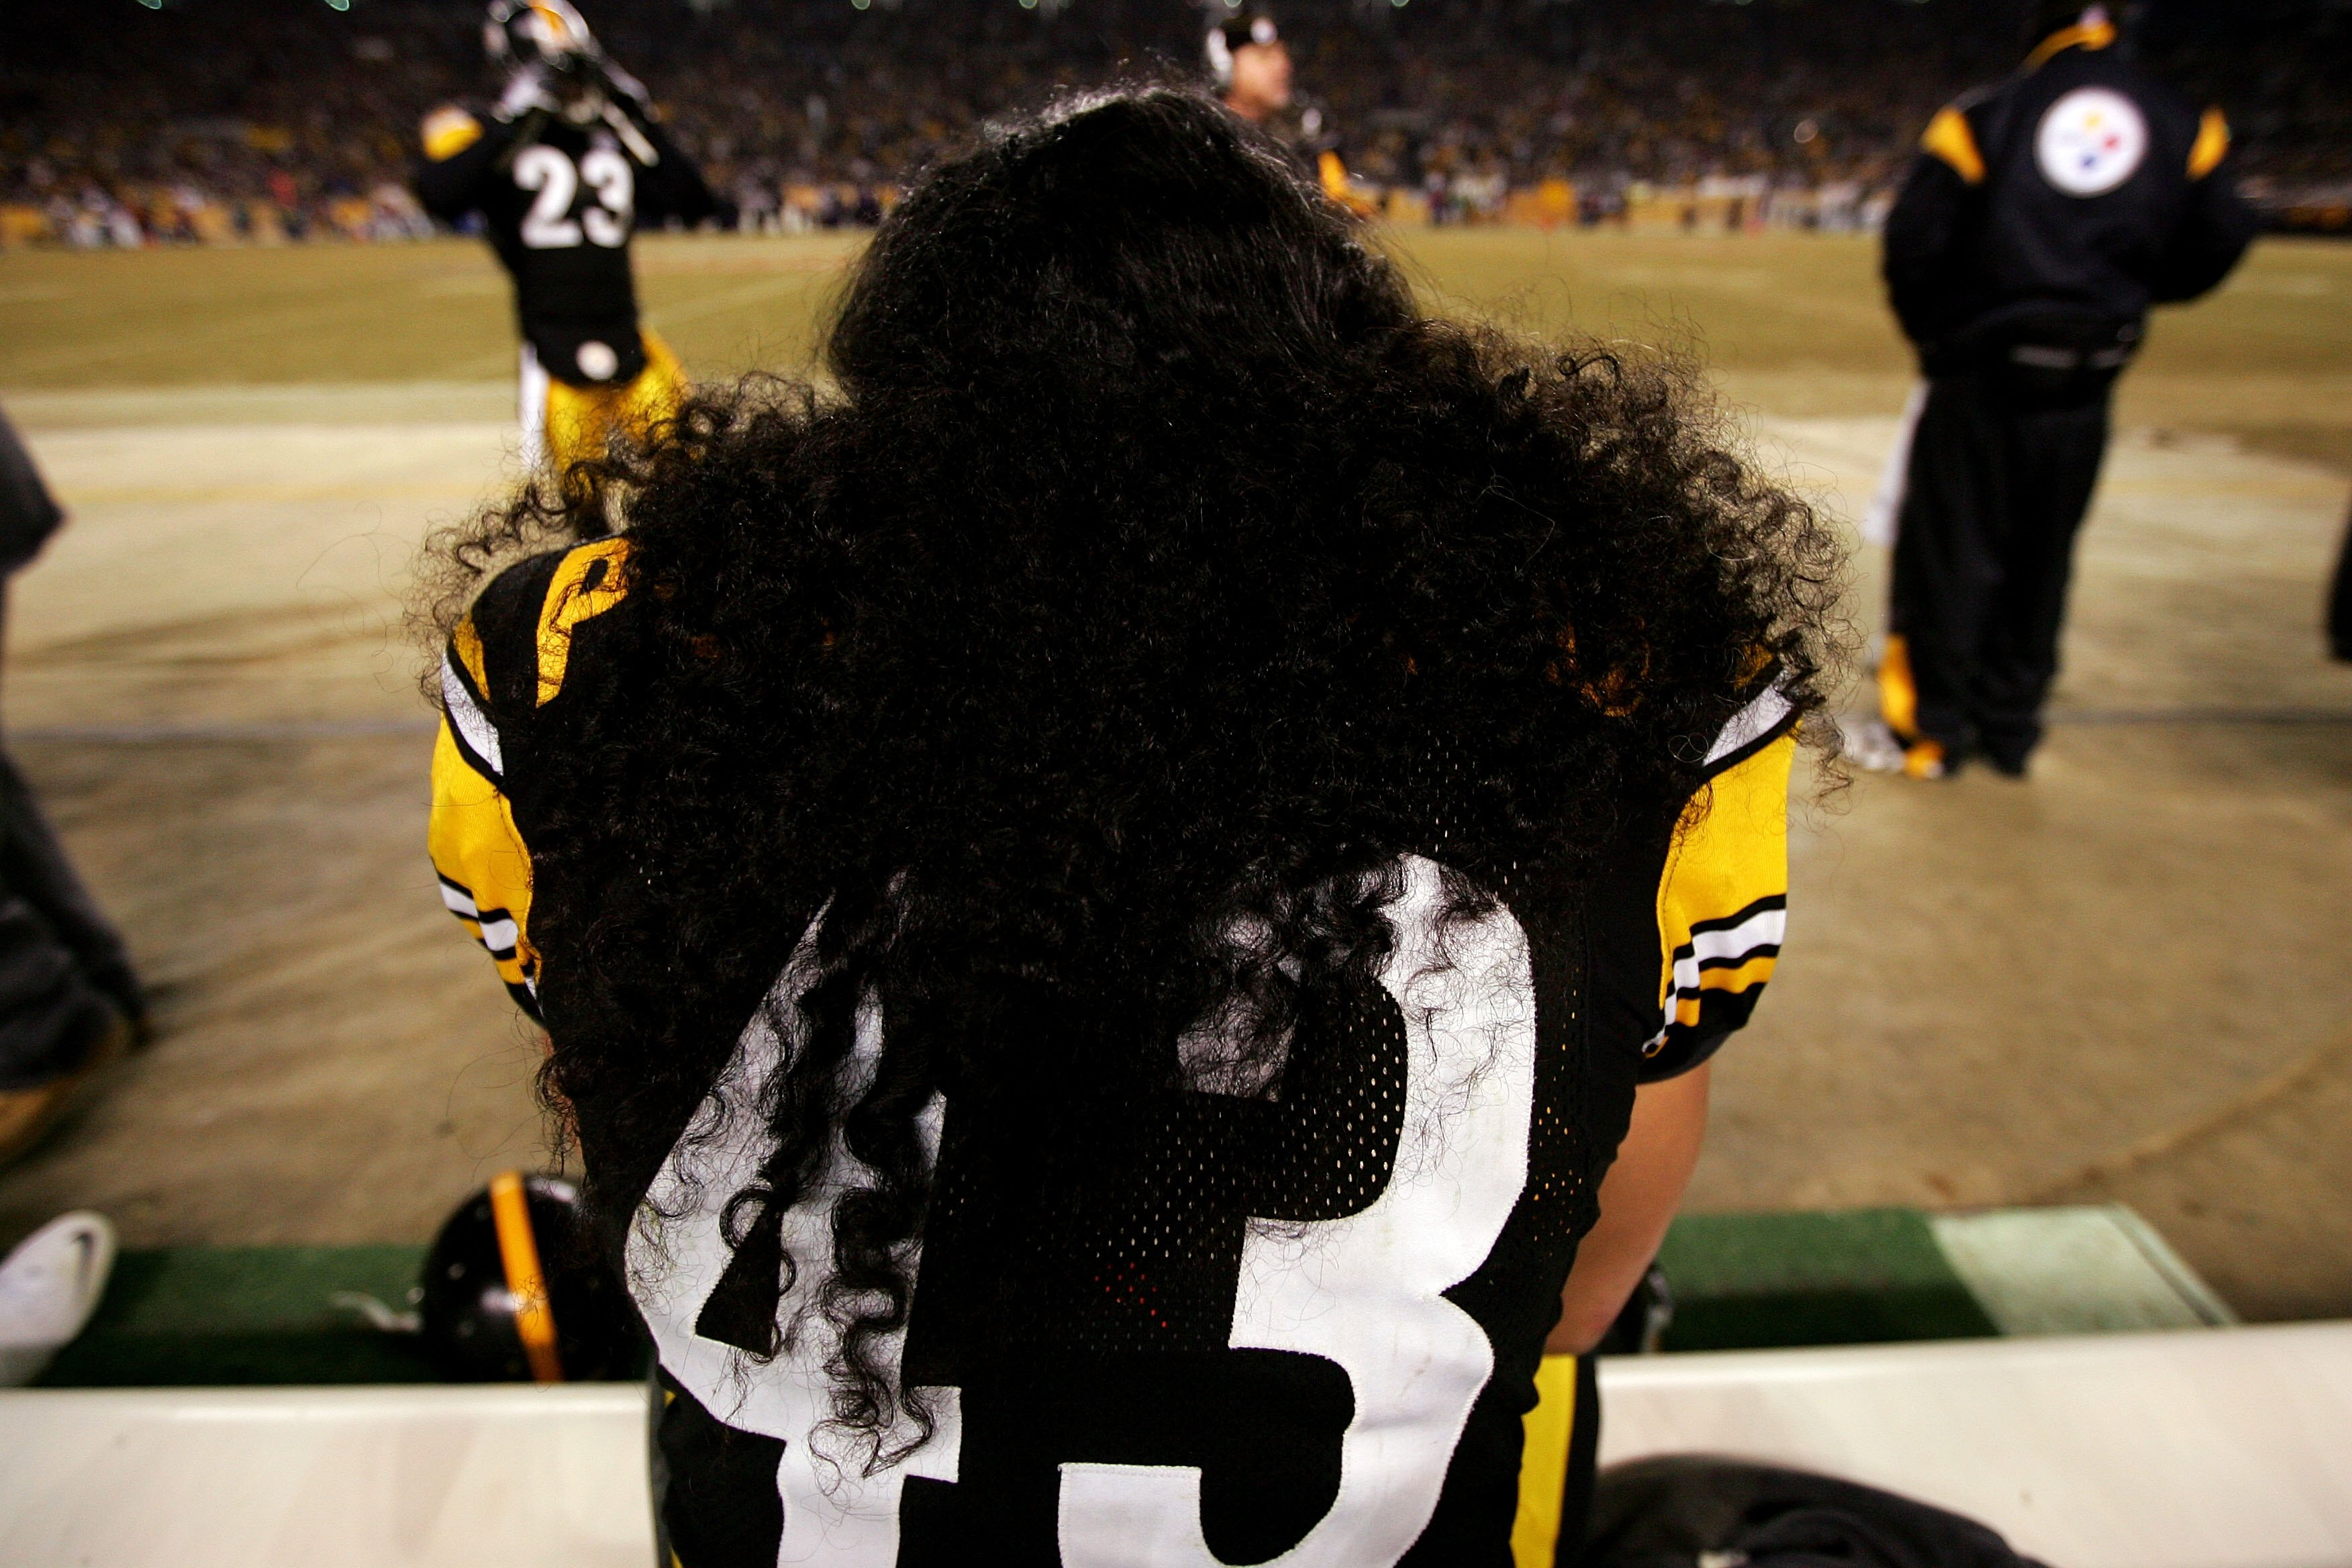 PITTSBURGH - JANUARY 18:  A detail of the hair of Troy Polamalu #43 of of the Pittsburgh Steelers against the Baltimore Ravens during the AFC Championship game on January 18, 2009 at Heinz Field in Pittsburgh, Pennsylvania.  (Photo by Al Bello/Getty Image